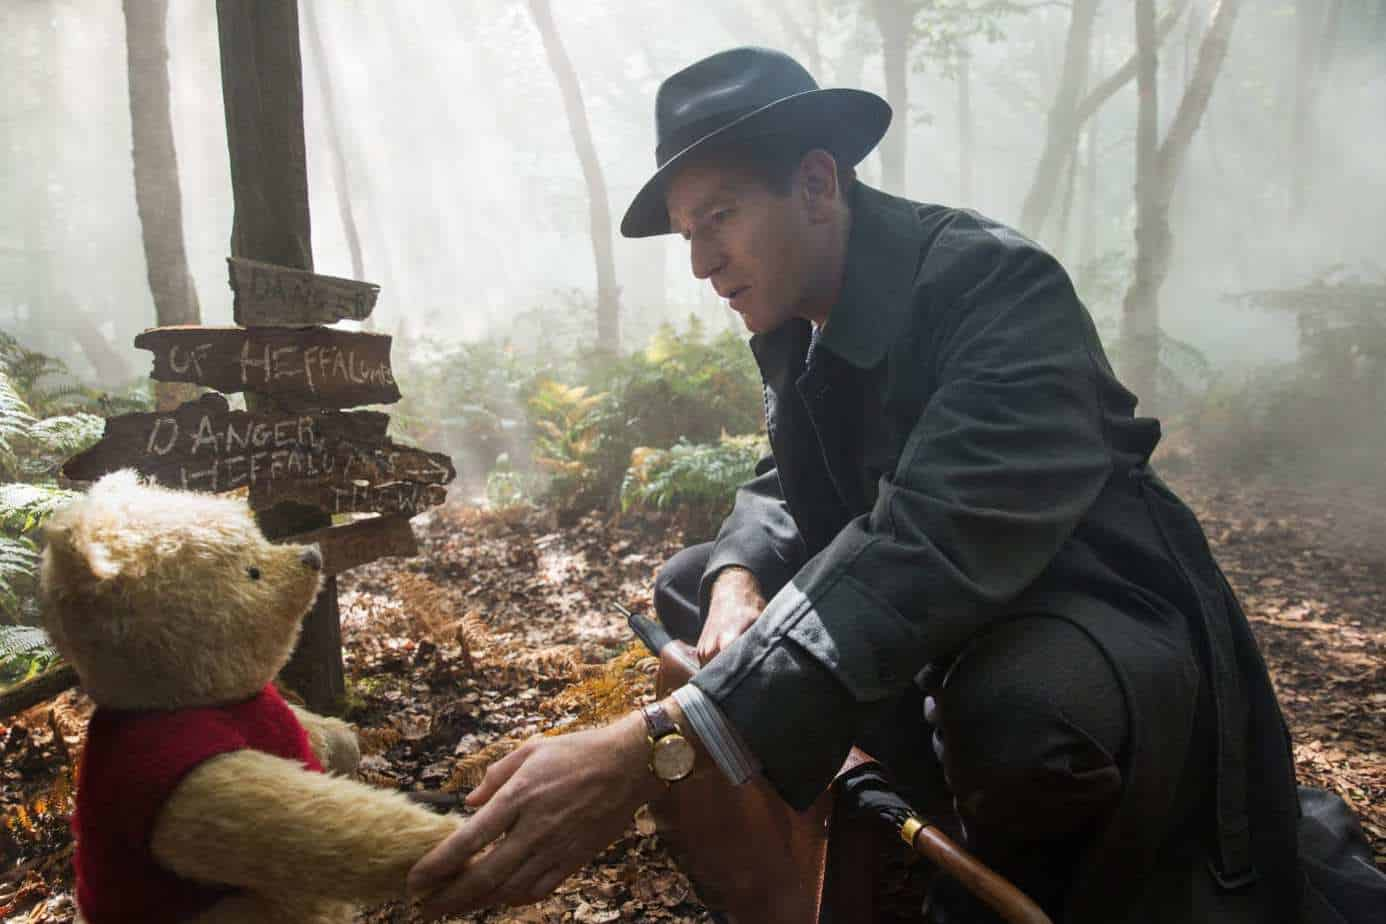 Christopher Robin (Ewan McGregor) with his long time friend Winnie the Pooh in Disney's live-action adventure CHRISTOPHER ROBIN.